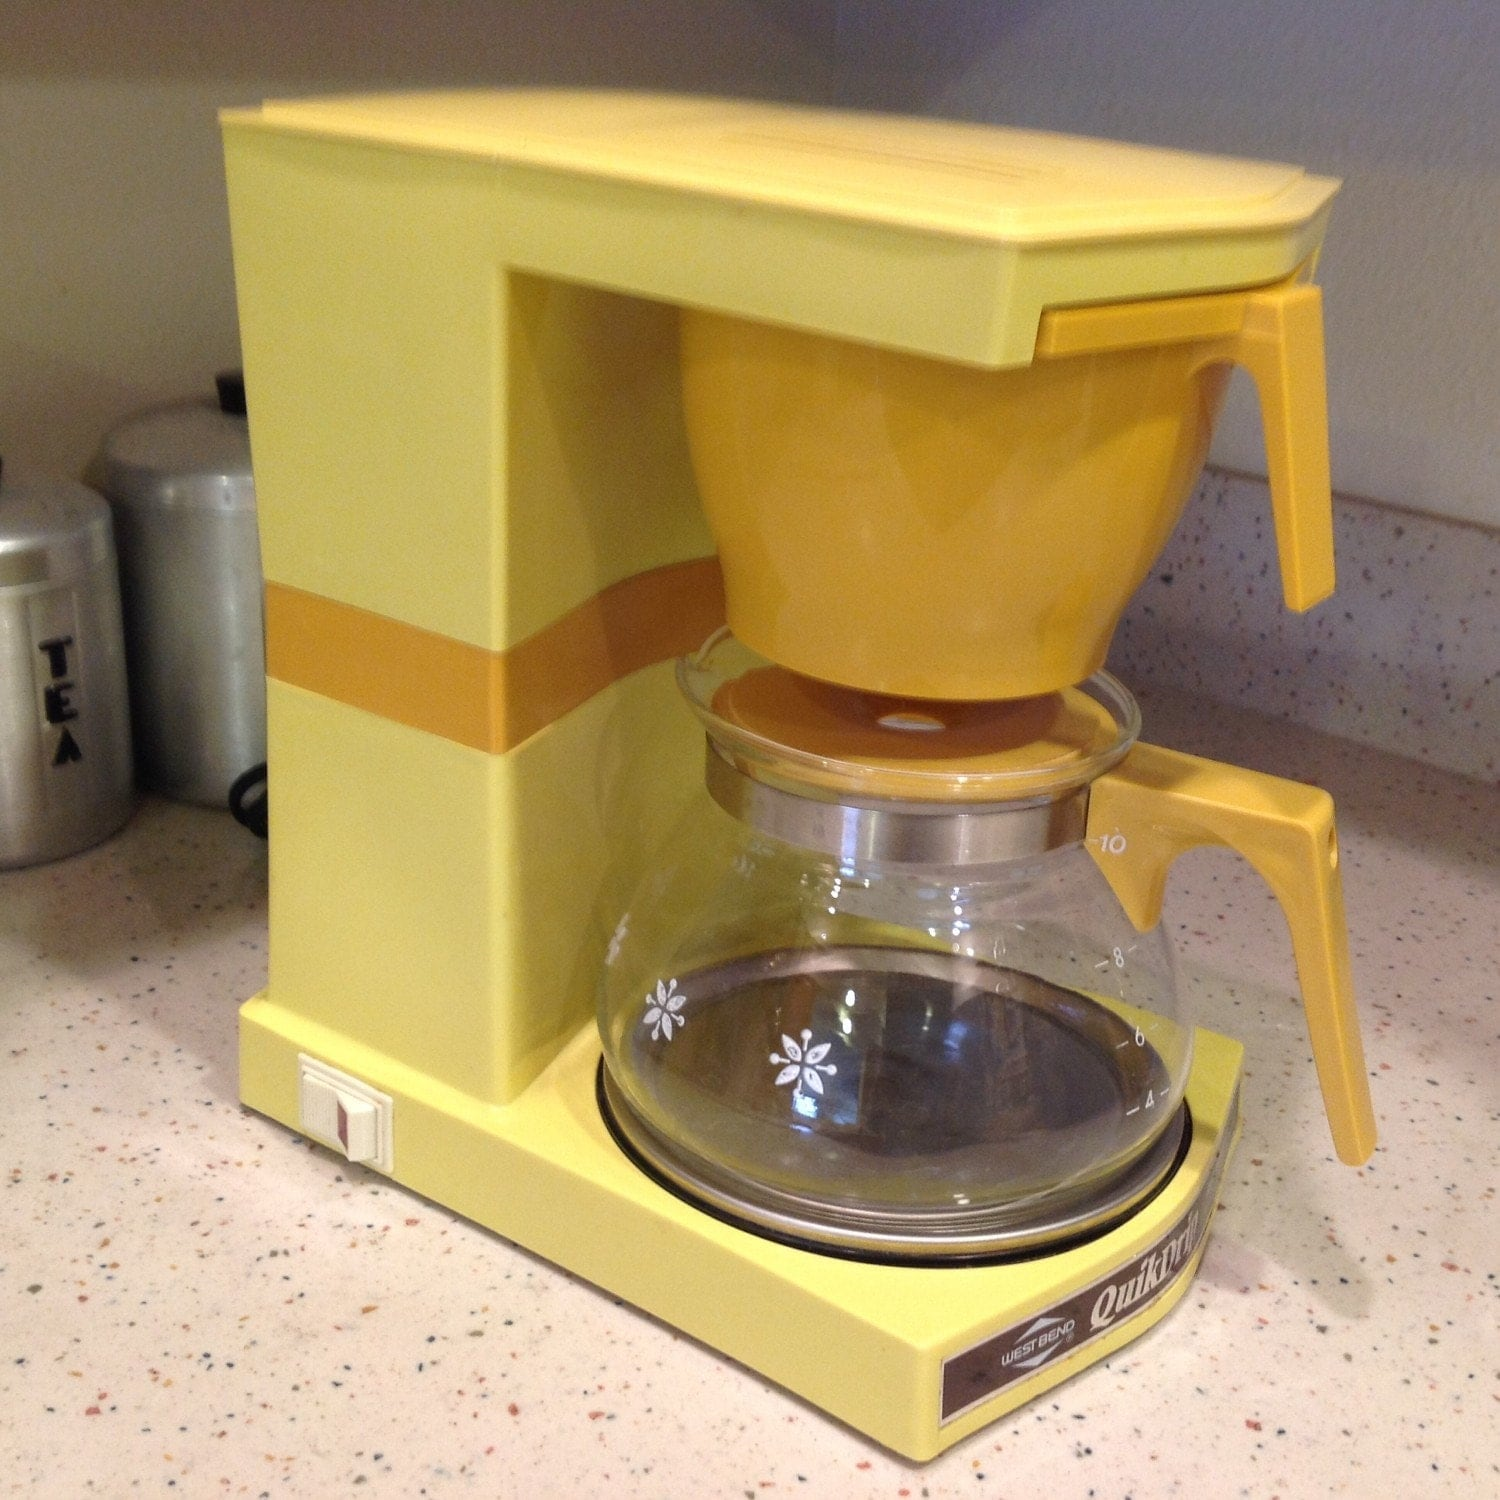 Automatic Drip Coffee Maker History : Vintage Coffee Maker West Bend Quik-Drip Yellow Automatic Drip